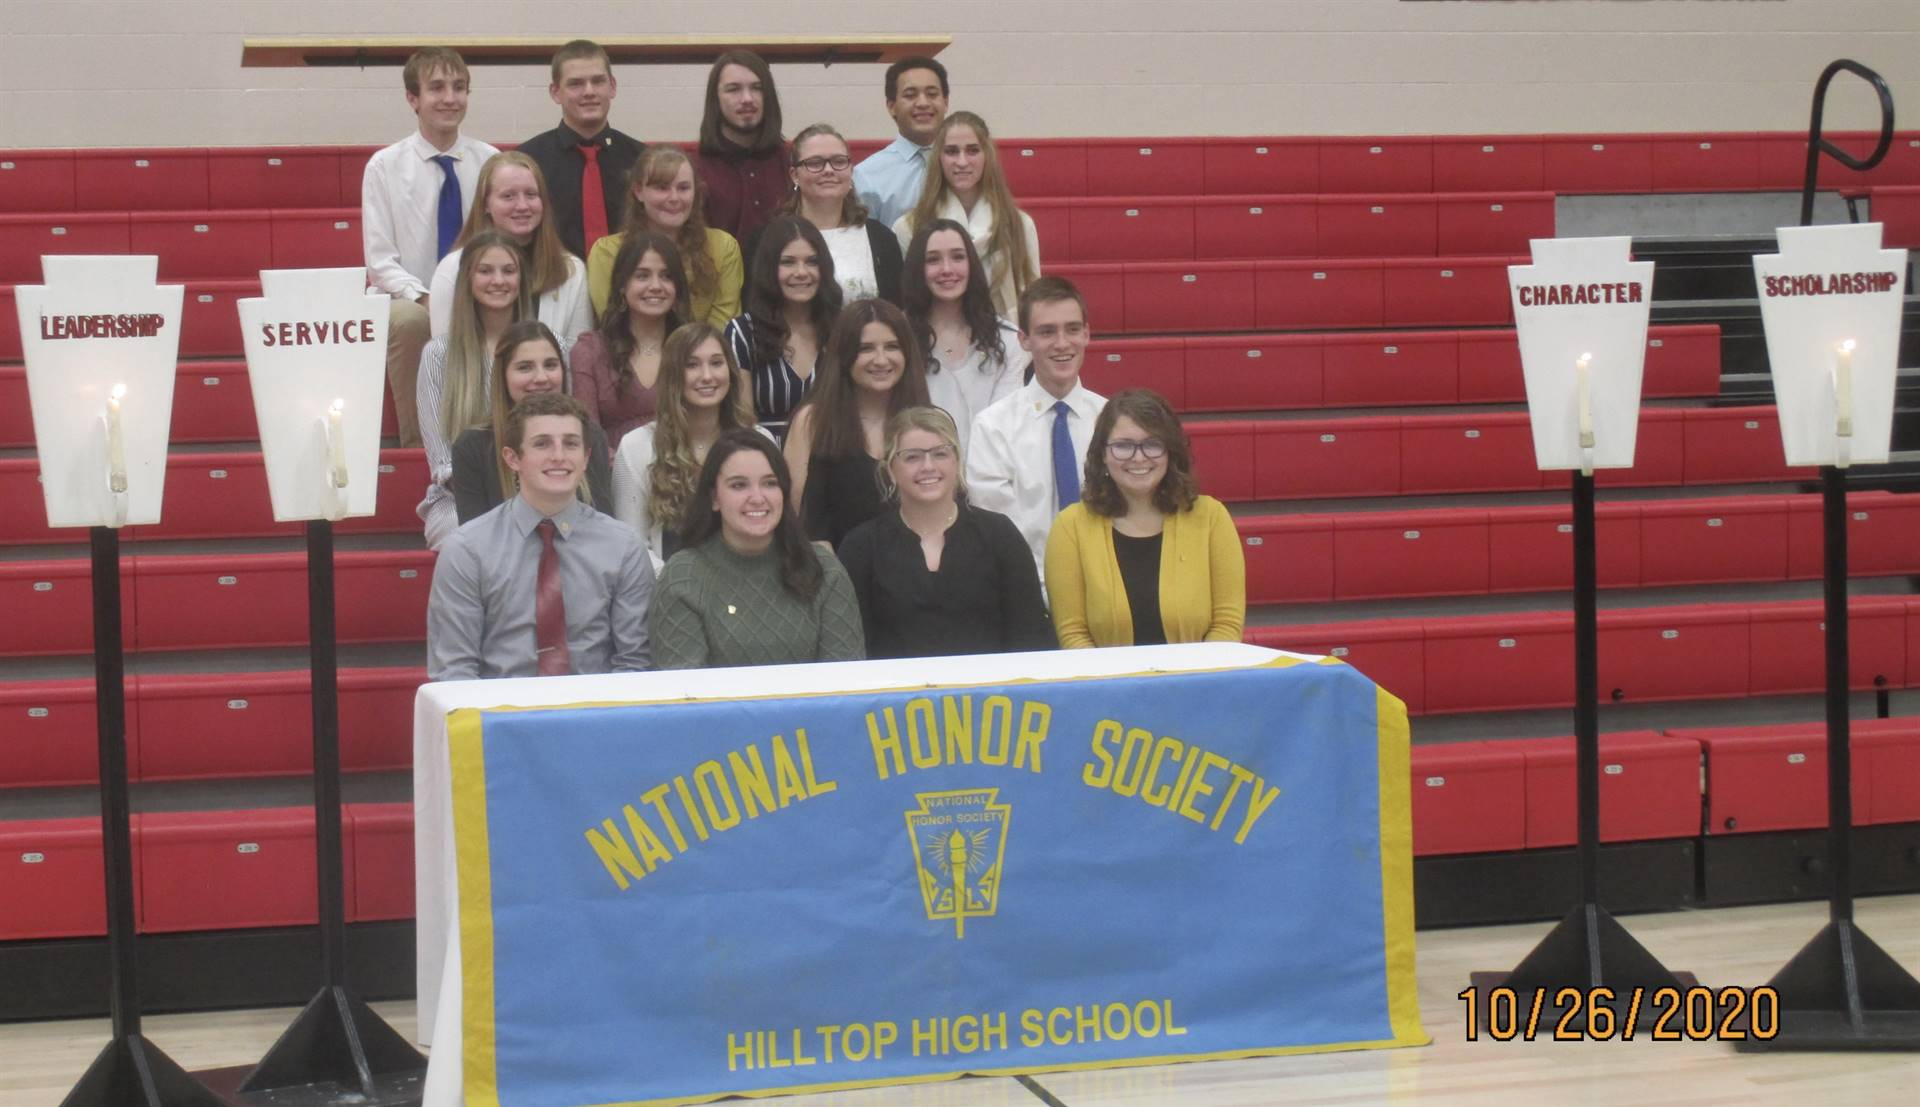 National Honor Society for 20-21